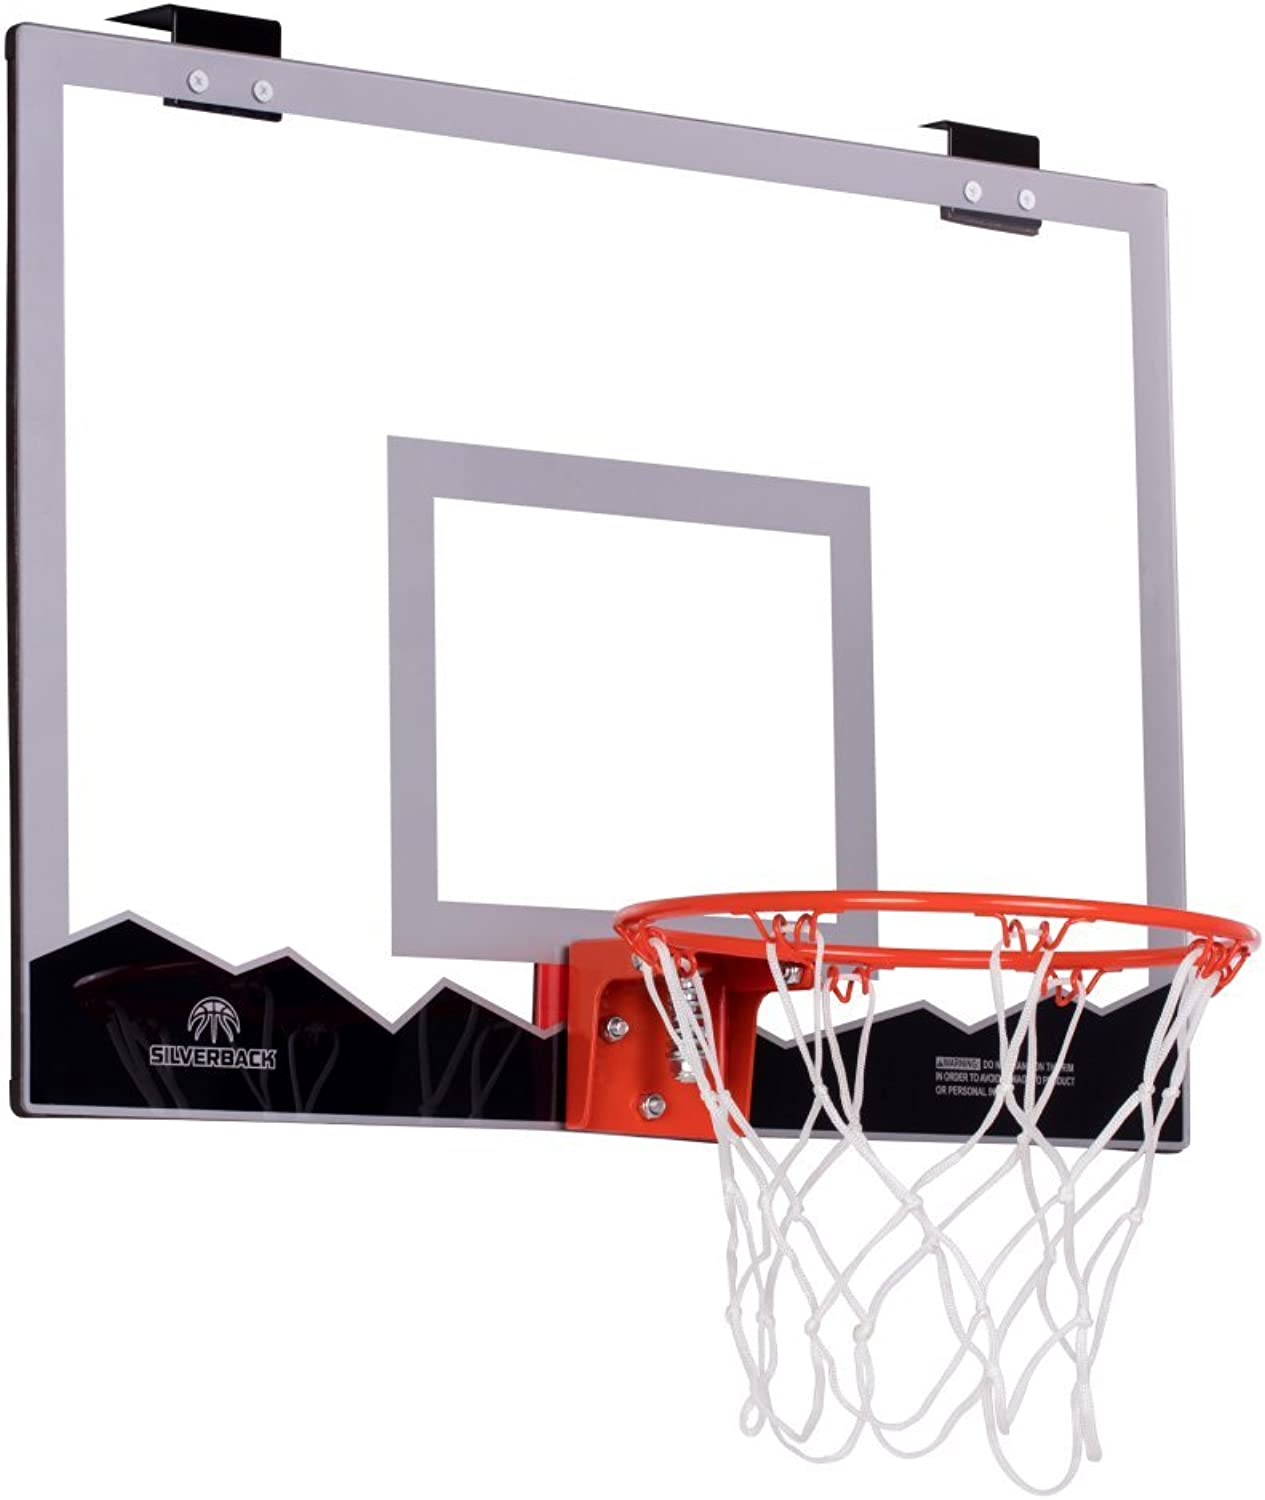 Silverback Mini Basketball Hoop Set